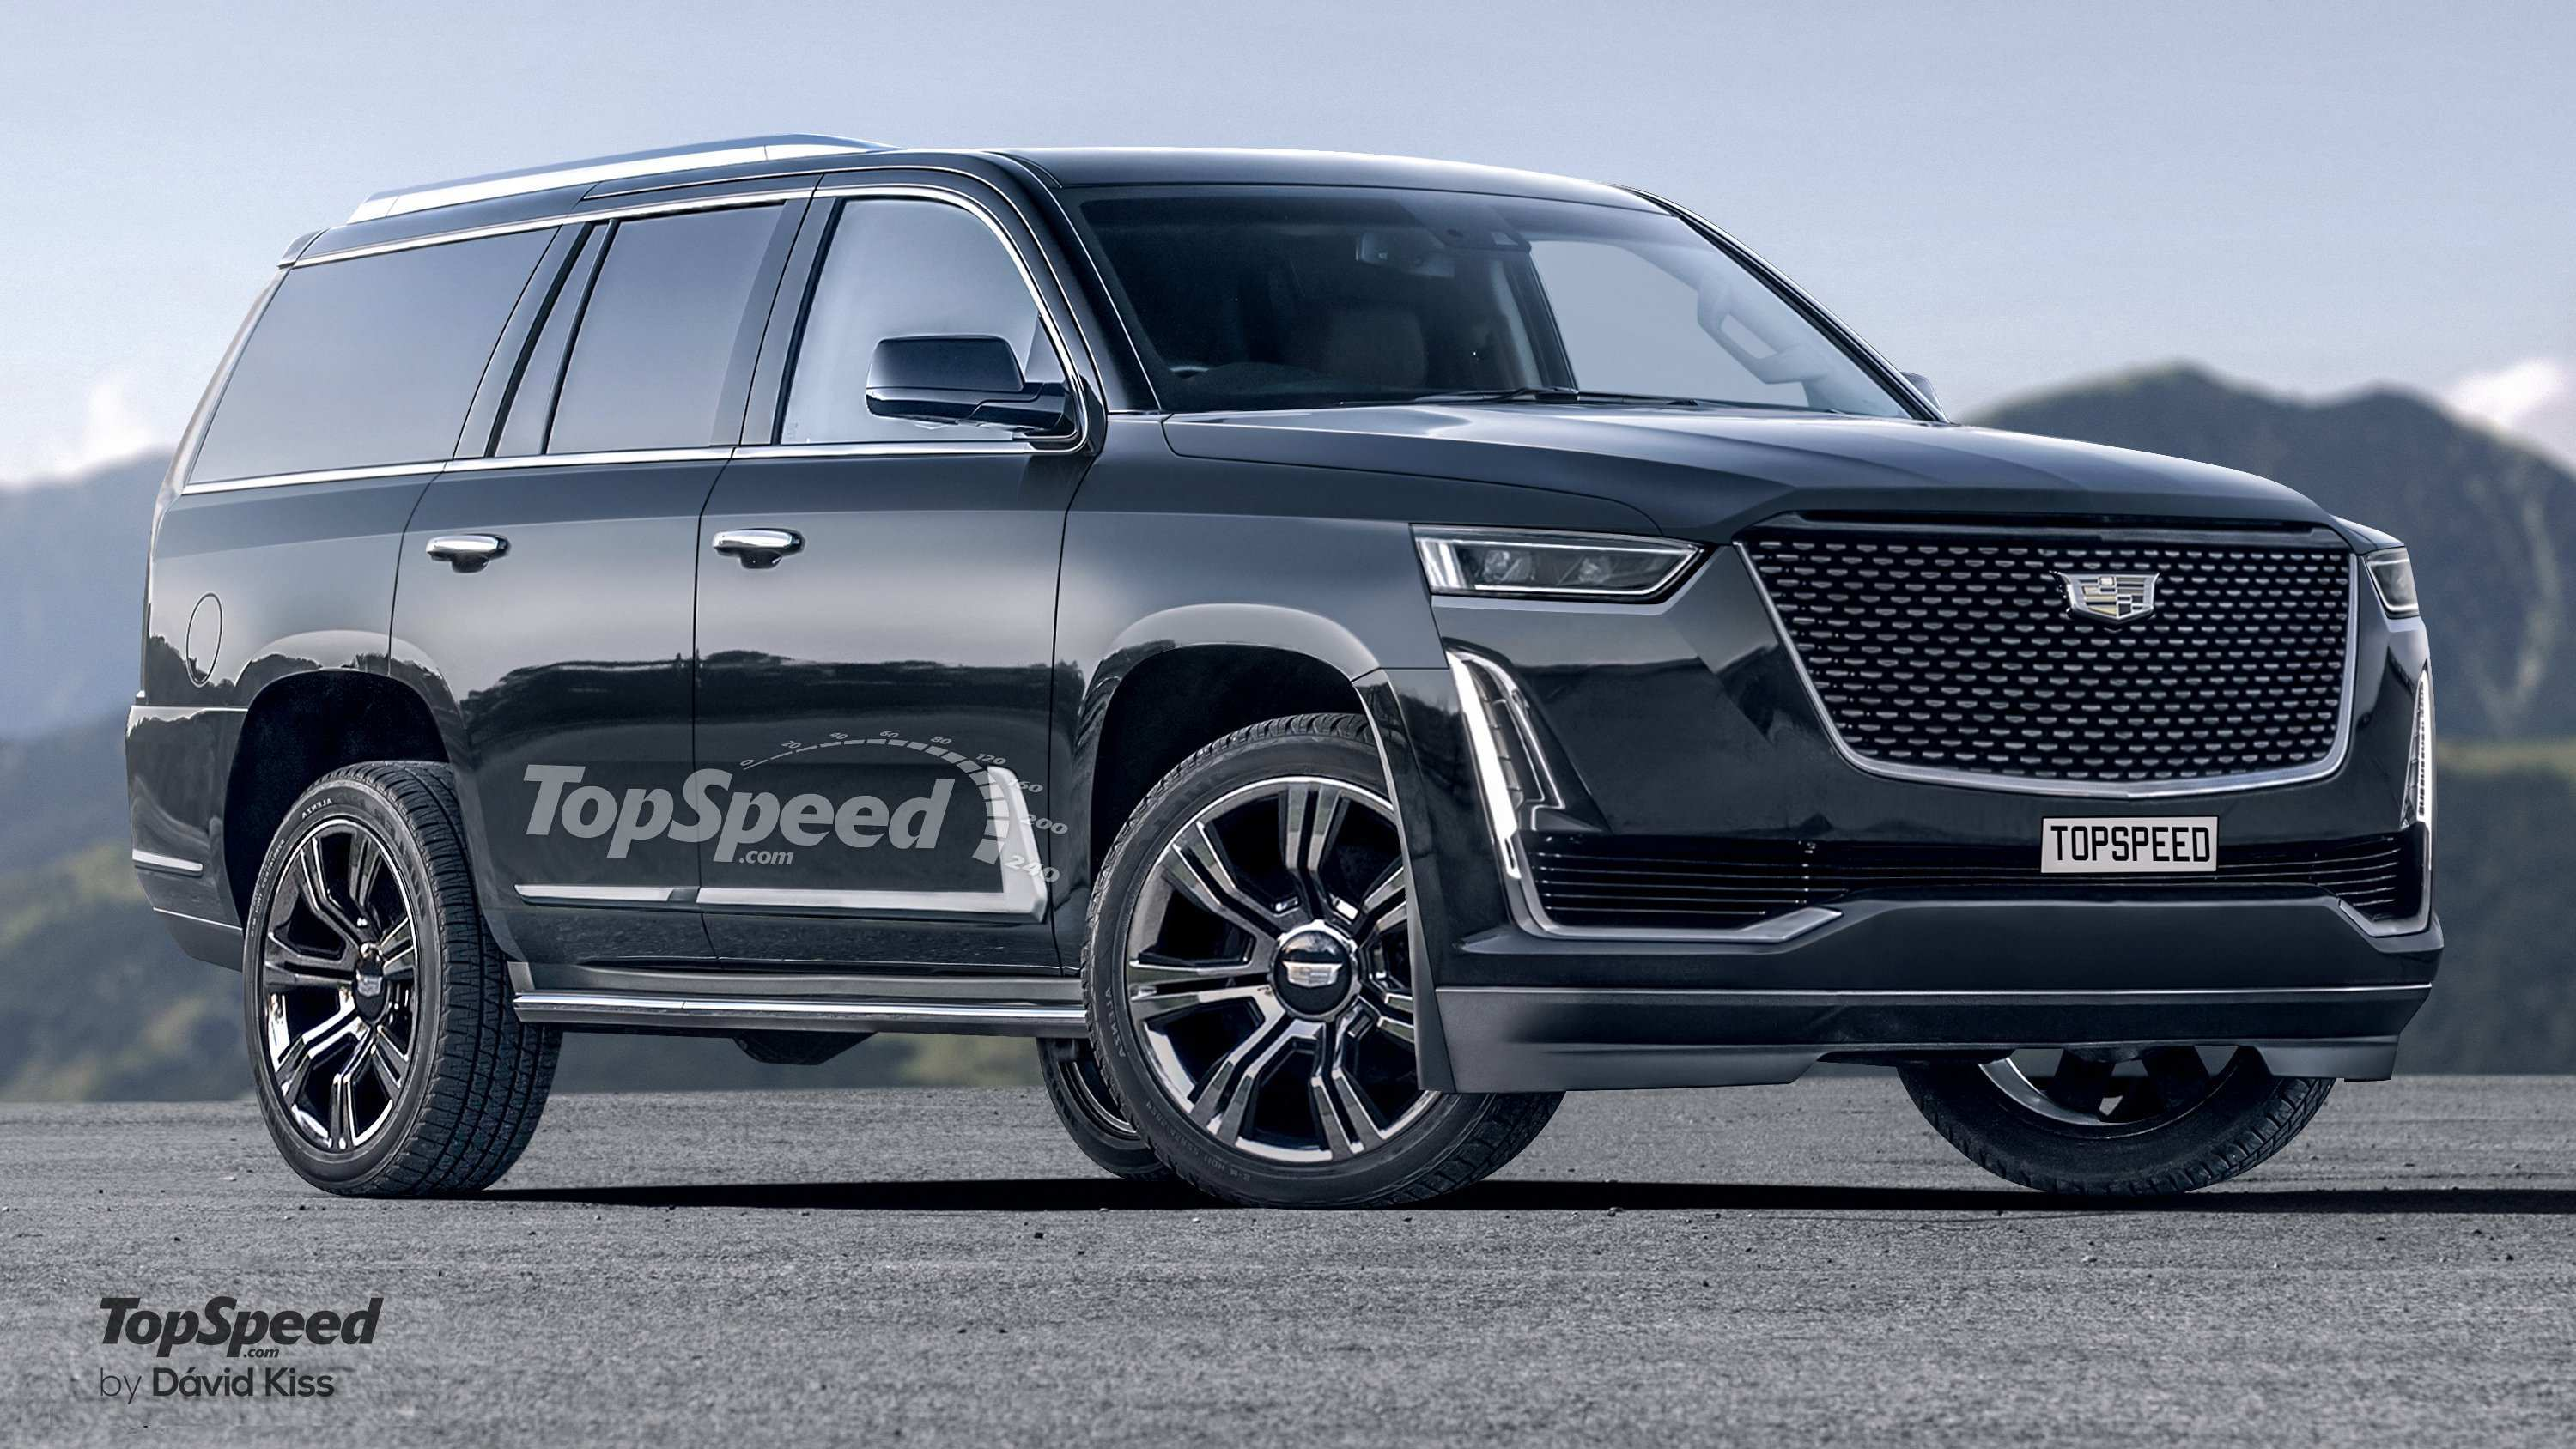 83 Concept of 2020 Cadillac Escalade Ext Overview for 2020 Cadillac Escalade Ext